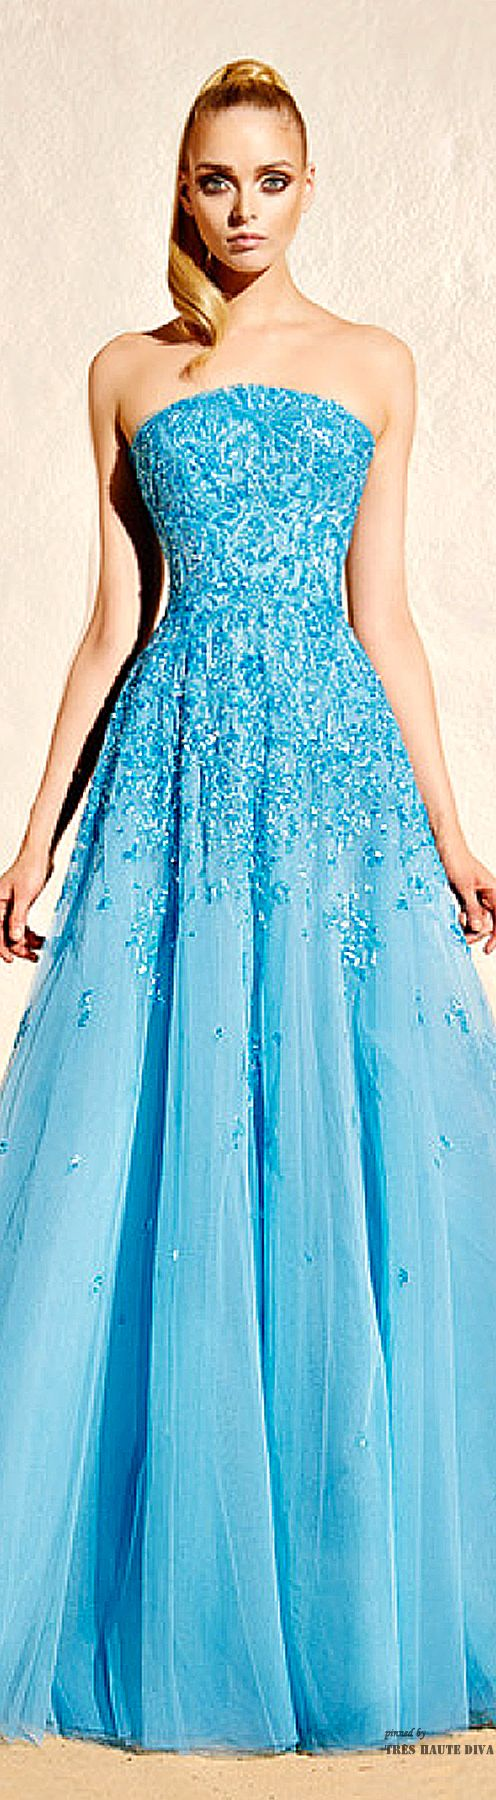 292 best Fancy Dresses images on Pinterest | Evening gowns, Cute ...